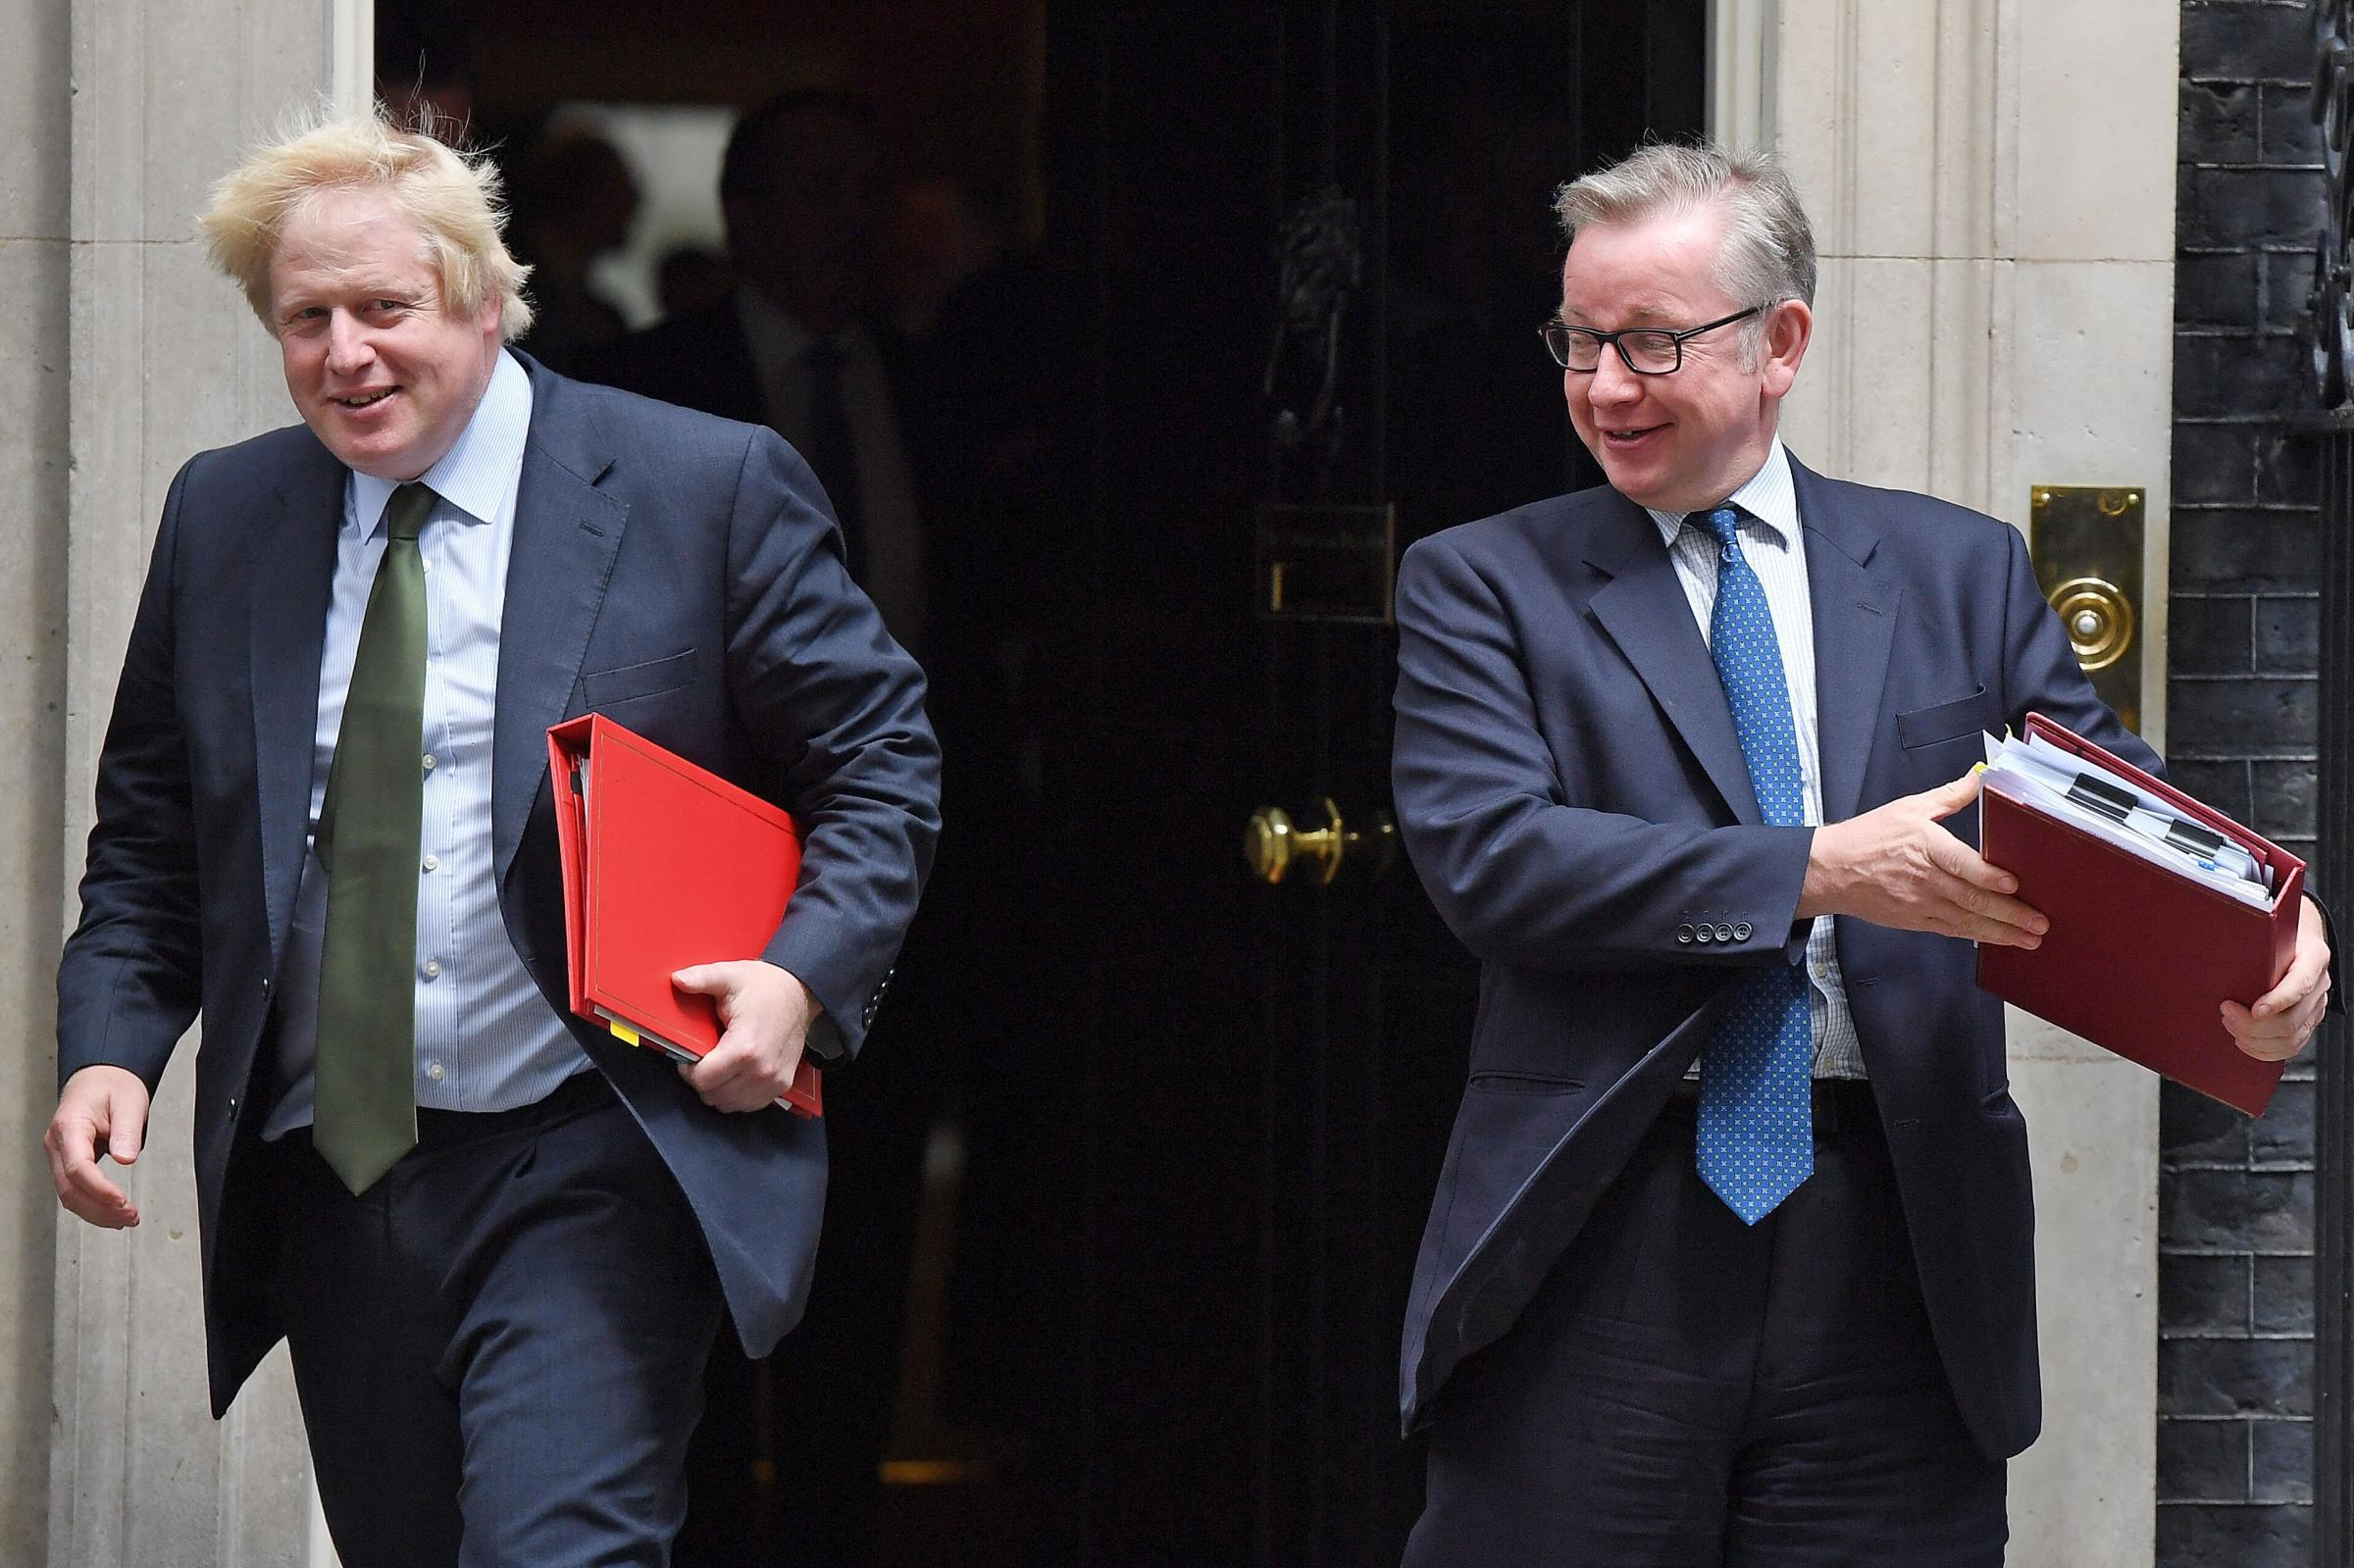 Apparent contenders for the Tory leadership, Boris Johnson Michael Gove